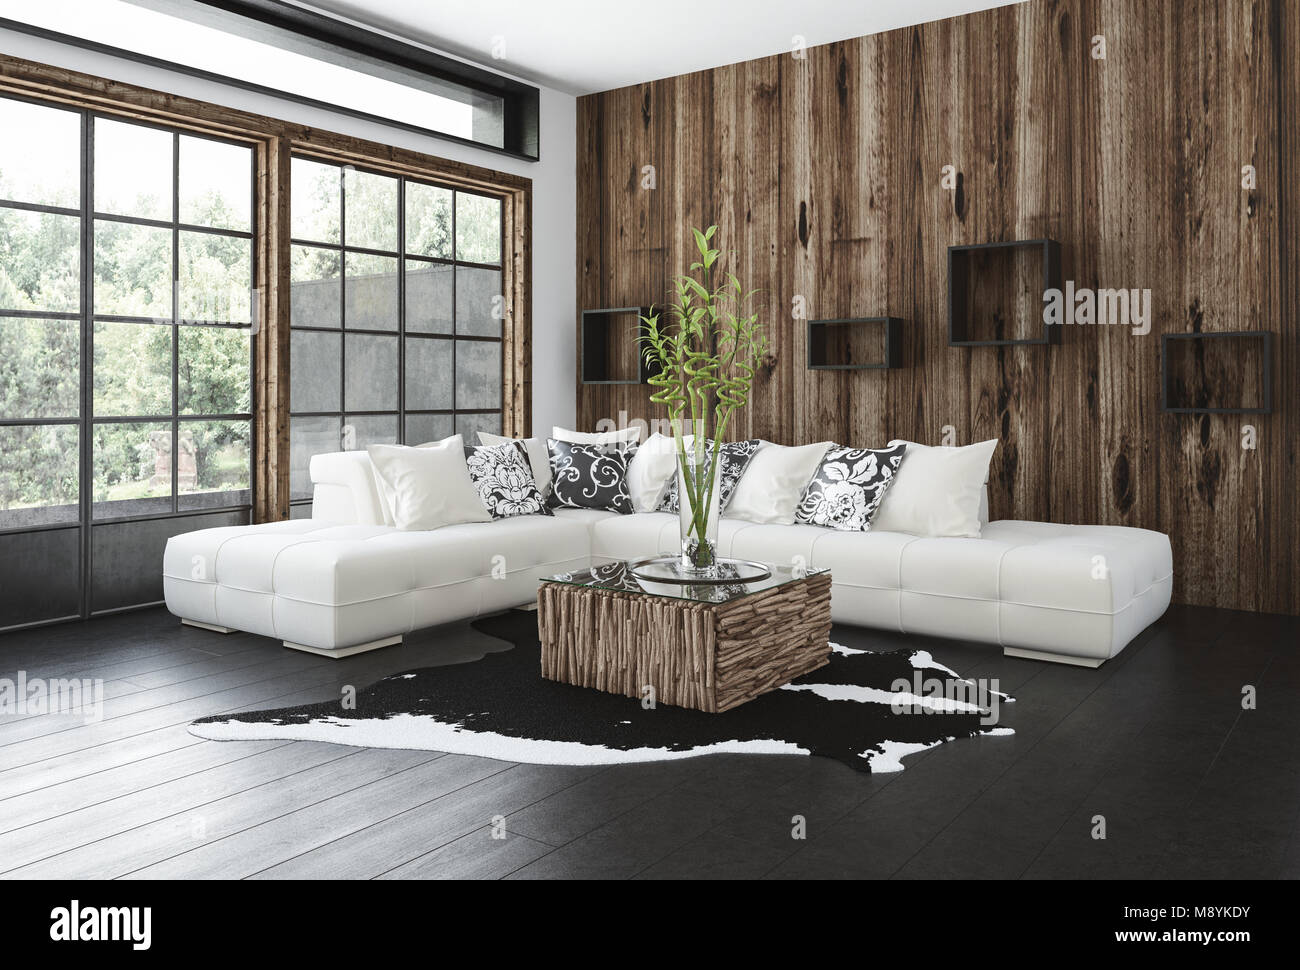 stylish rustic living room with wood paneling on the wall and window frames a hardwood floor corner unit sofa and animal skin rug lit by large view - Wood Paneling With Wood Floor